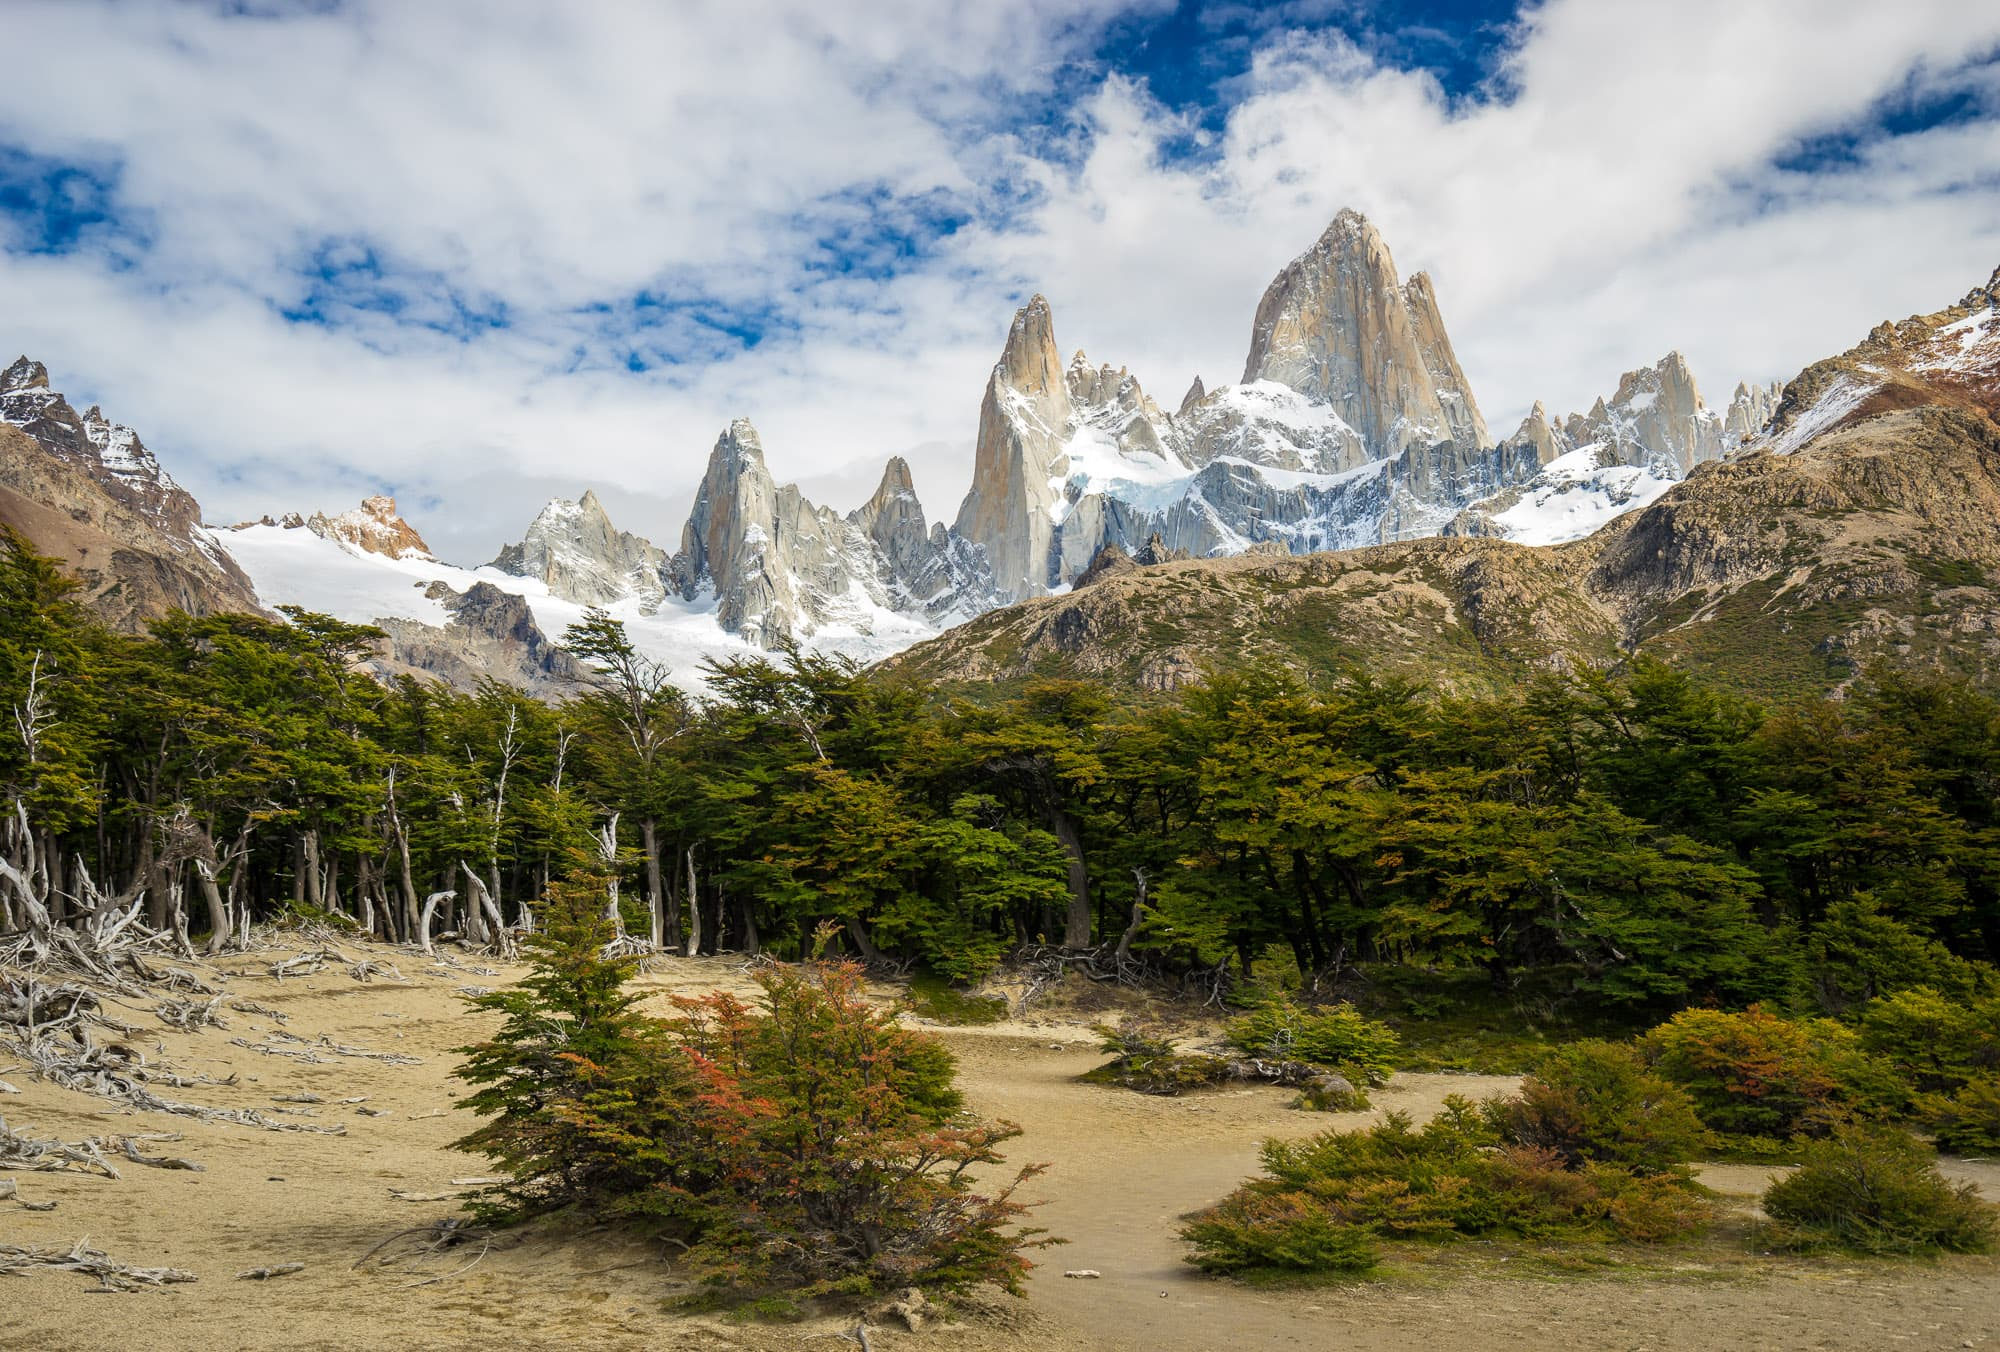 Mt. Fitz Roy with green trees close to Poincenot campground in summer on cloudy day